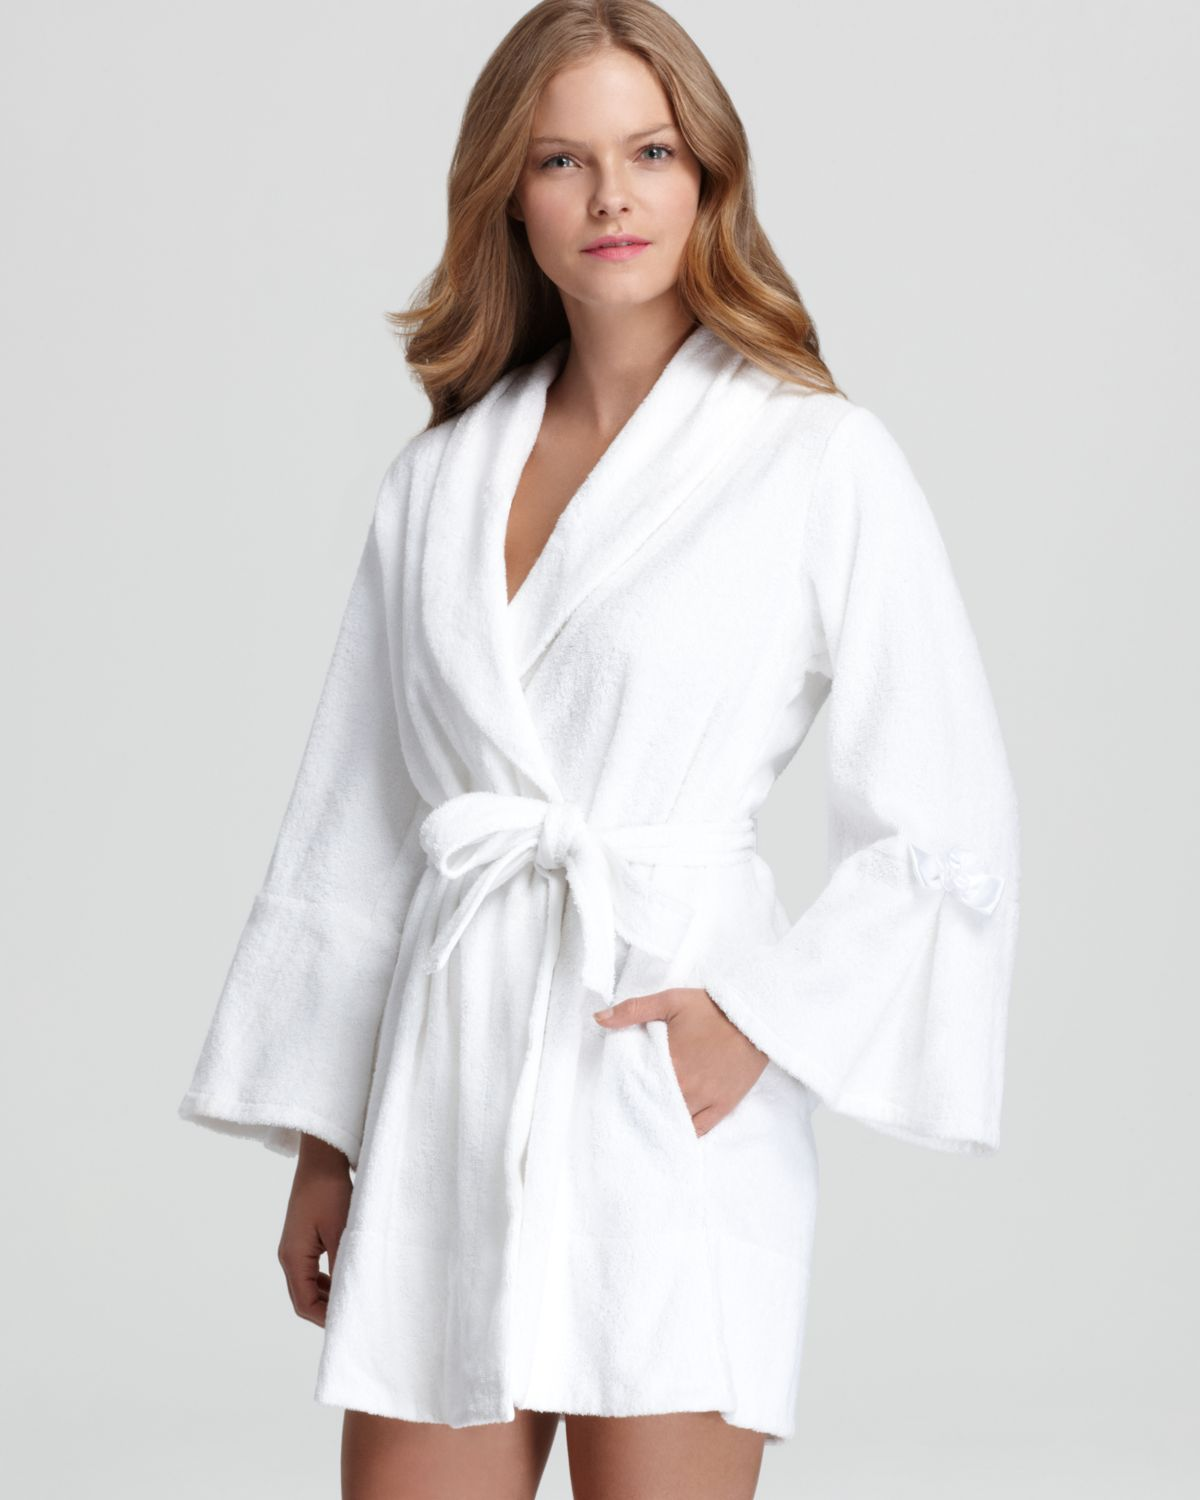 Lyst betsey johnson loop terry bridal robe in gray for Robes de mariage de betsey johnson